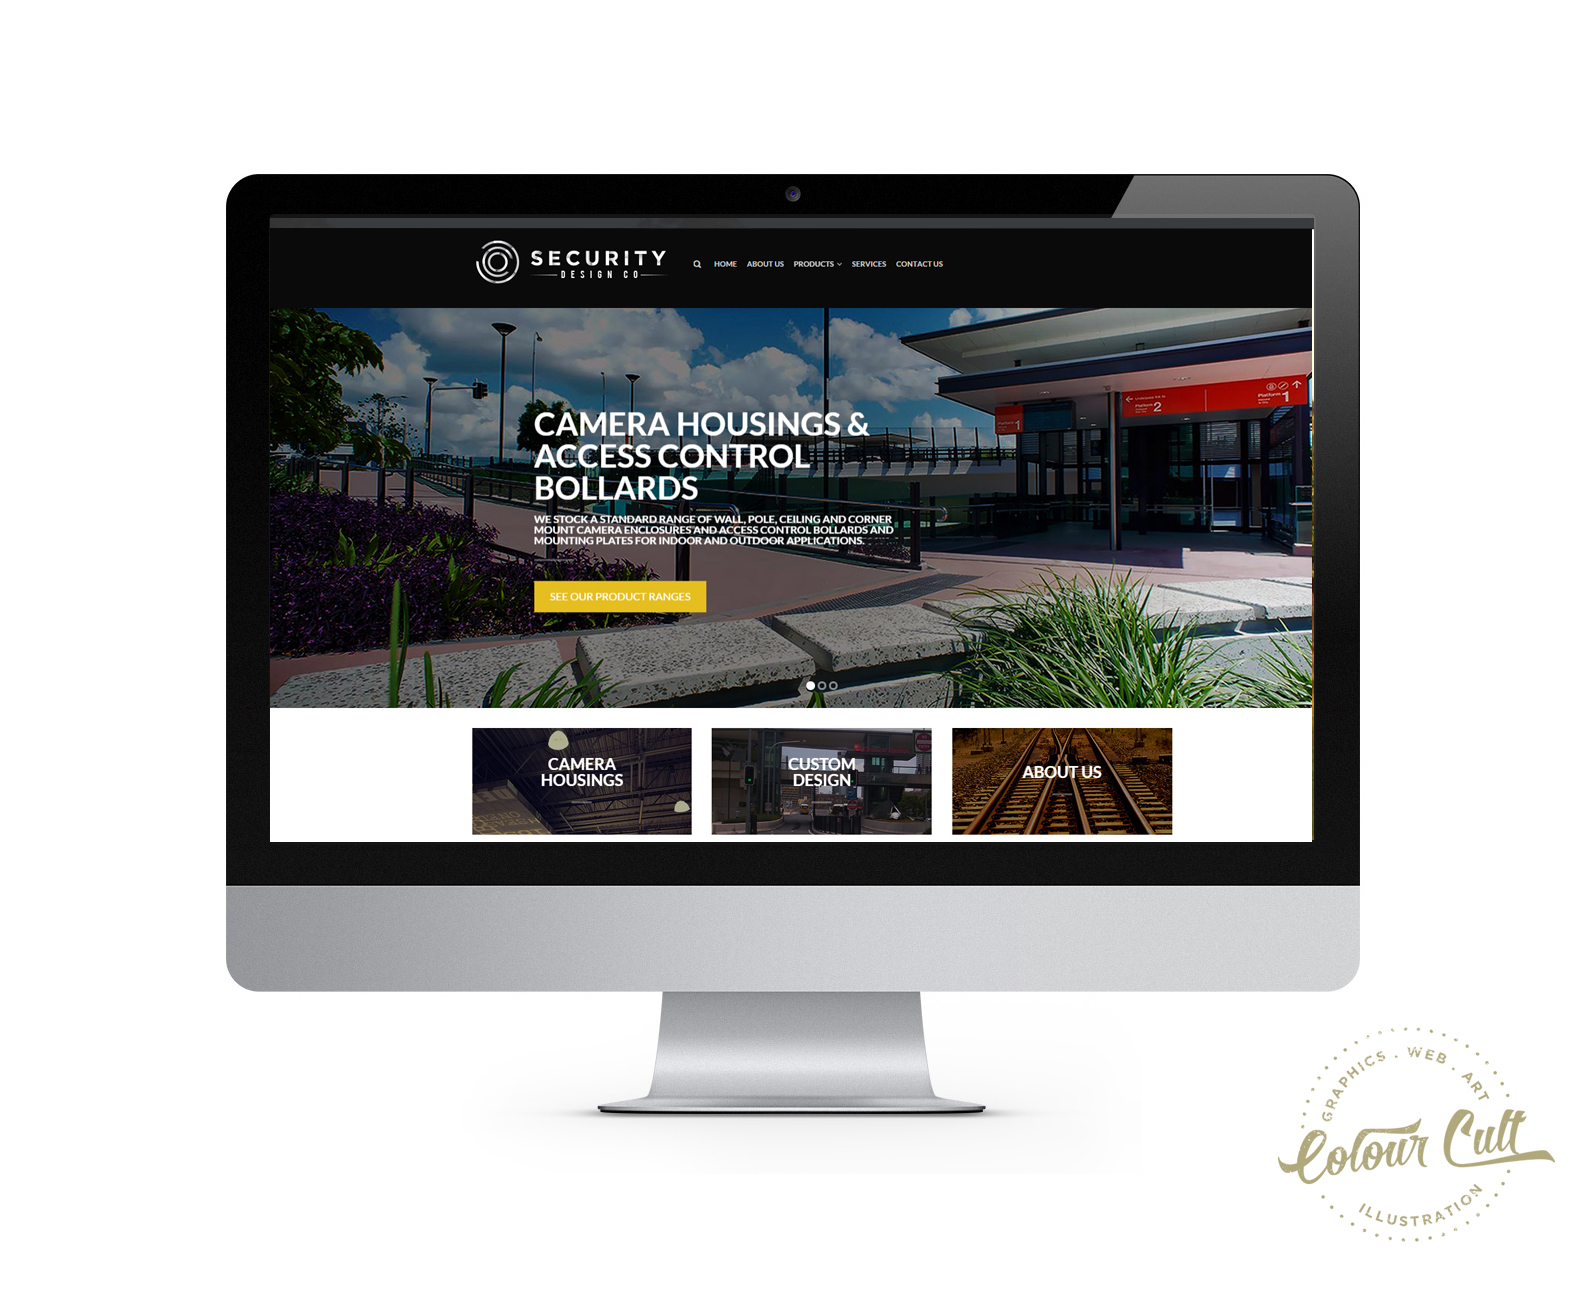 Security Design Co website by Tegan Swyny of Colour Cult, North Brisbane graphic design.